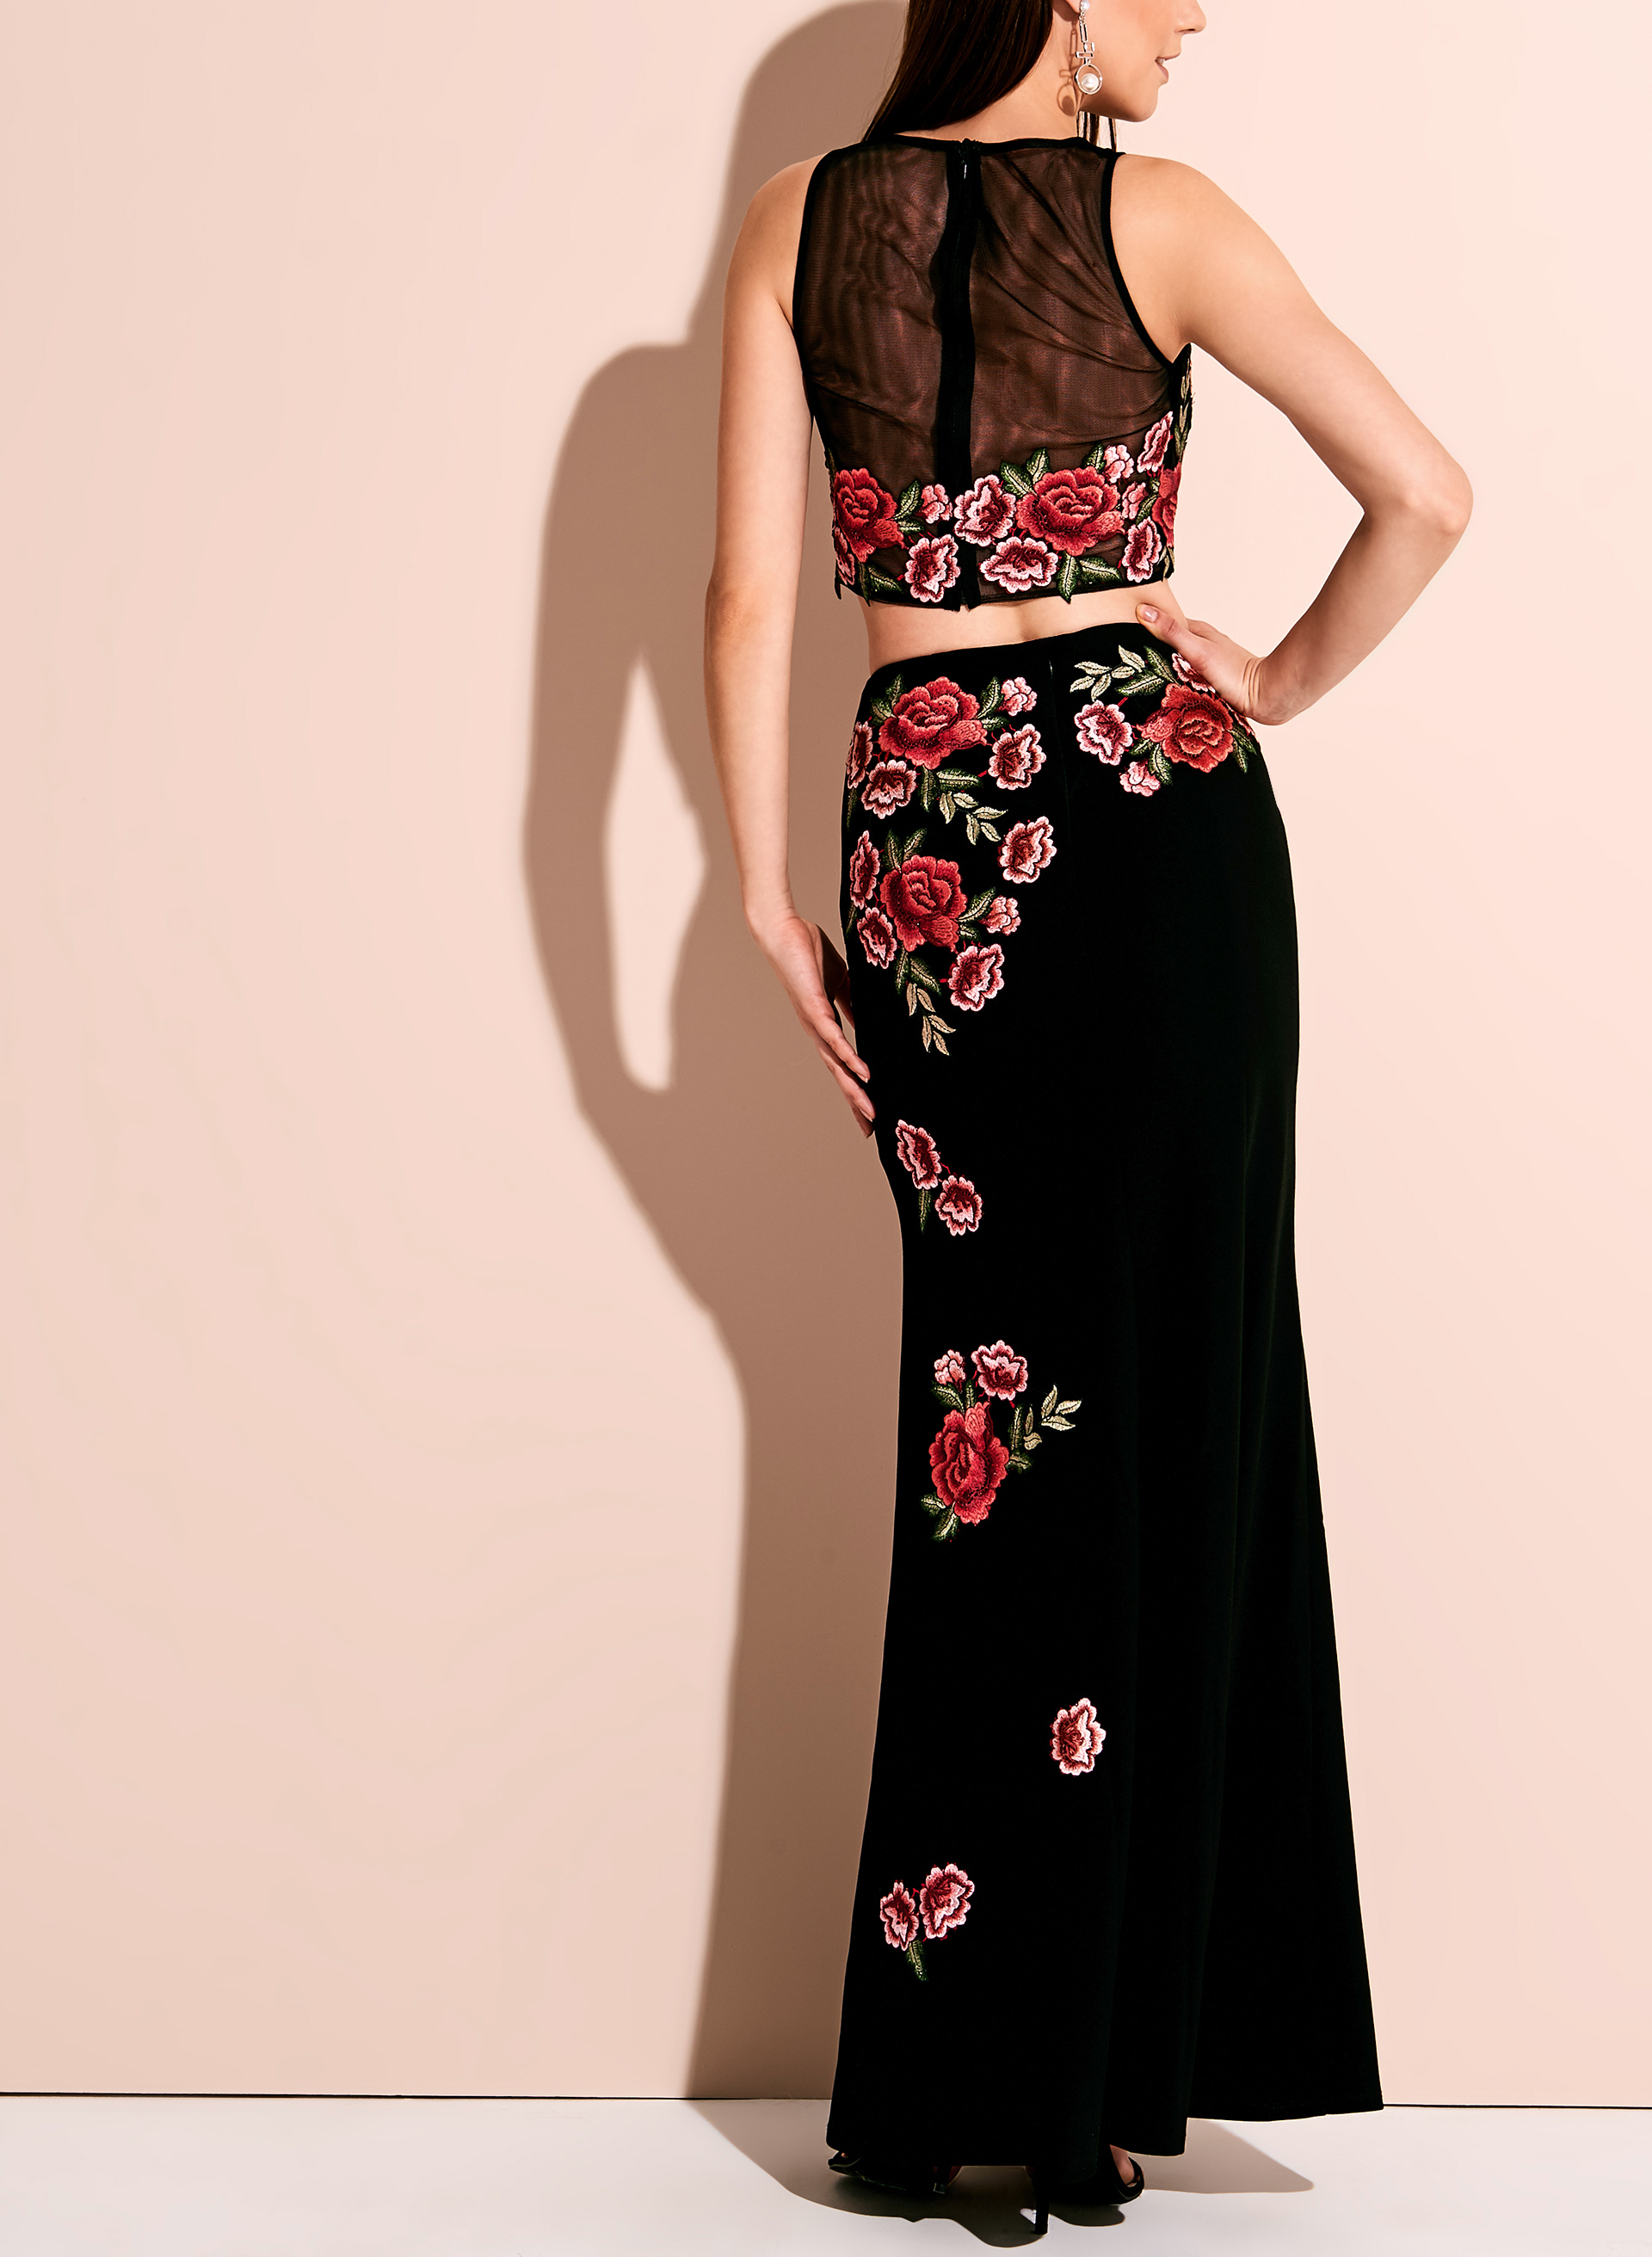 Decode 1.8 - Two Piece Floral Print Gown, Multi, hi-res